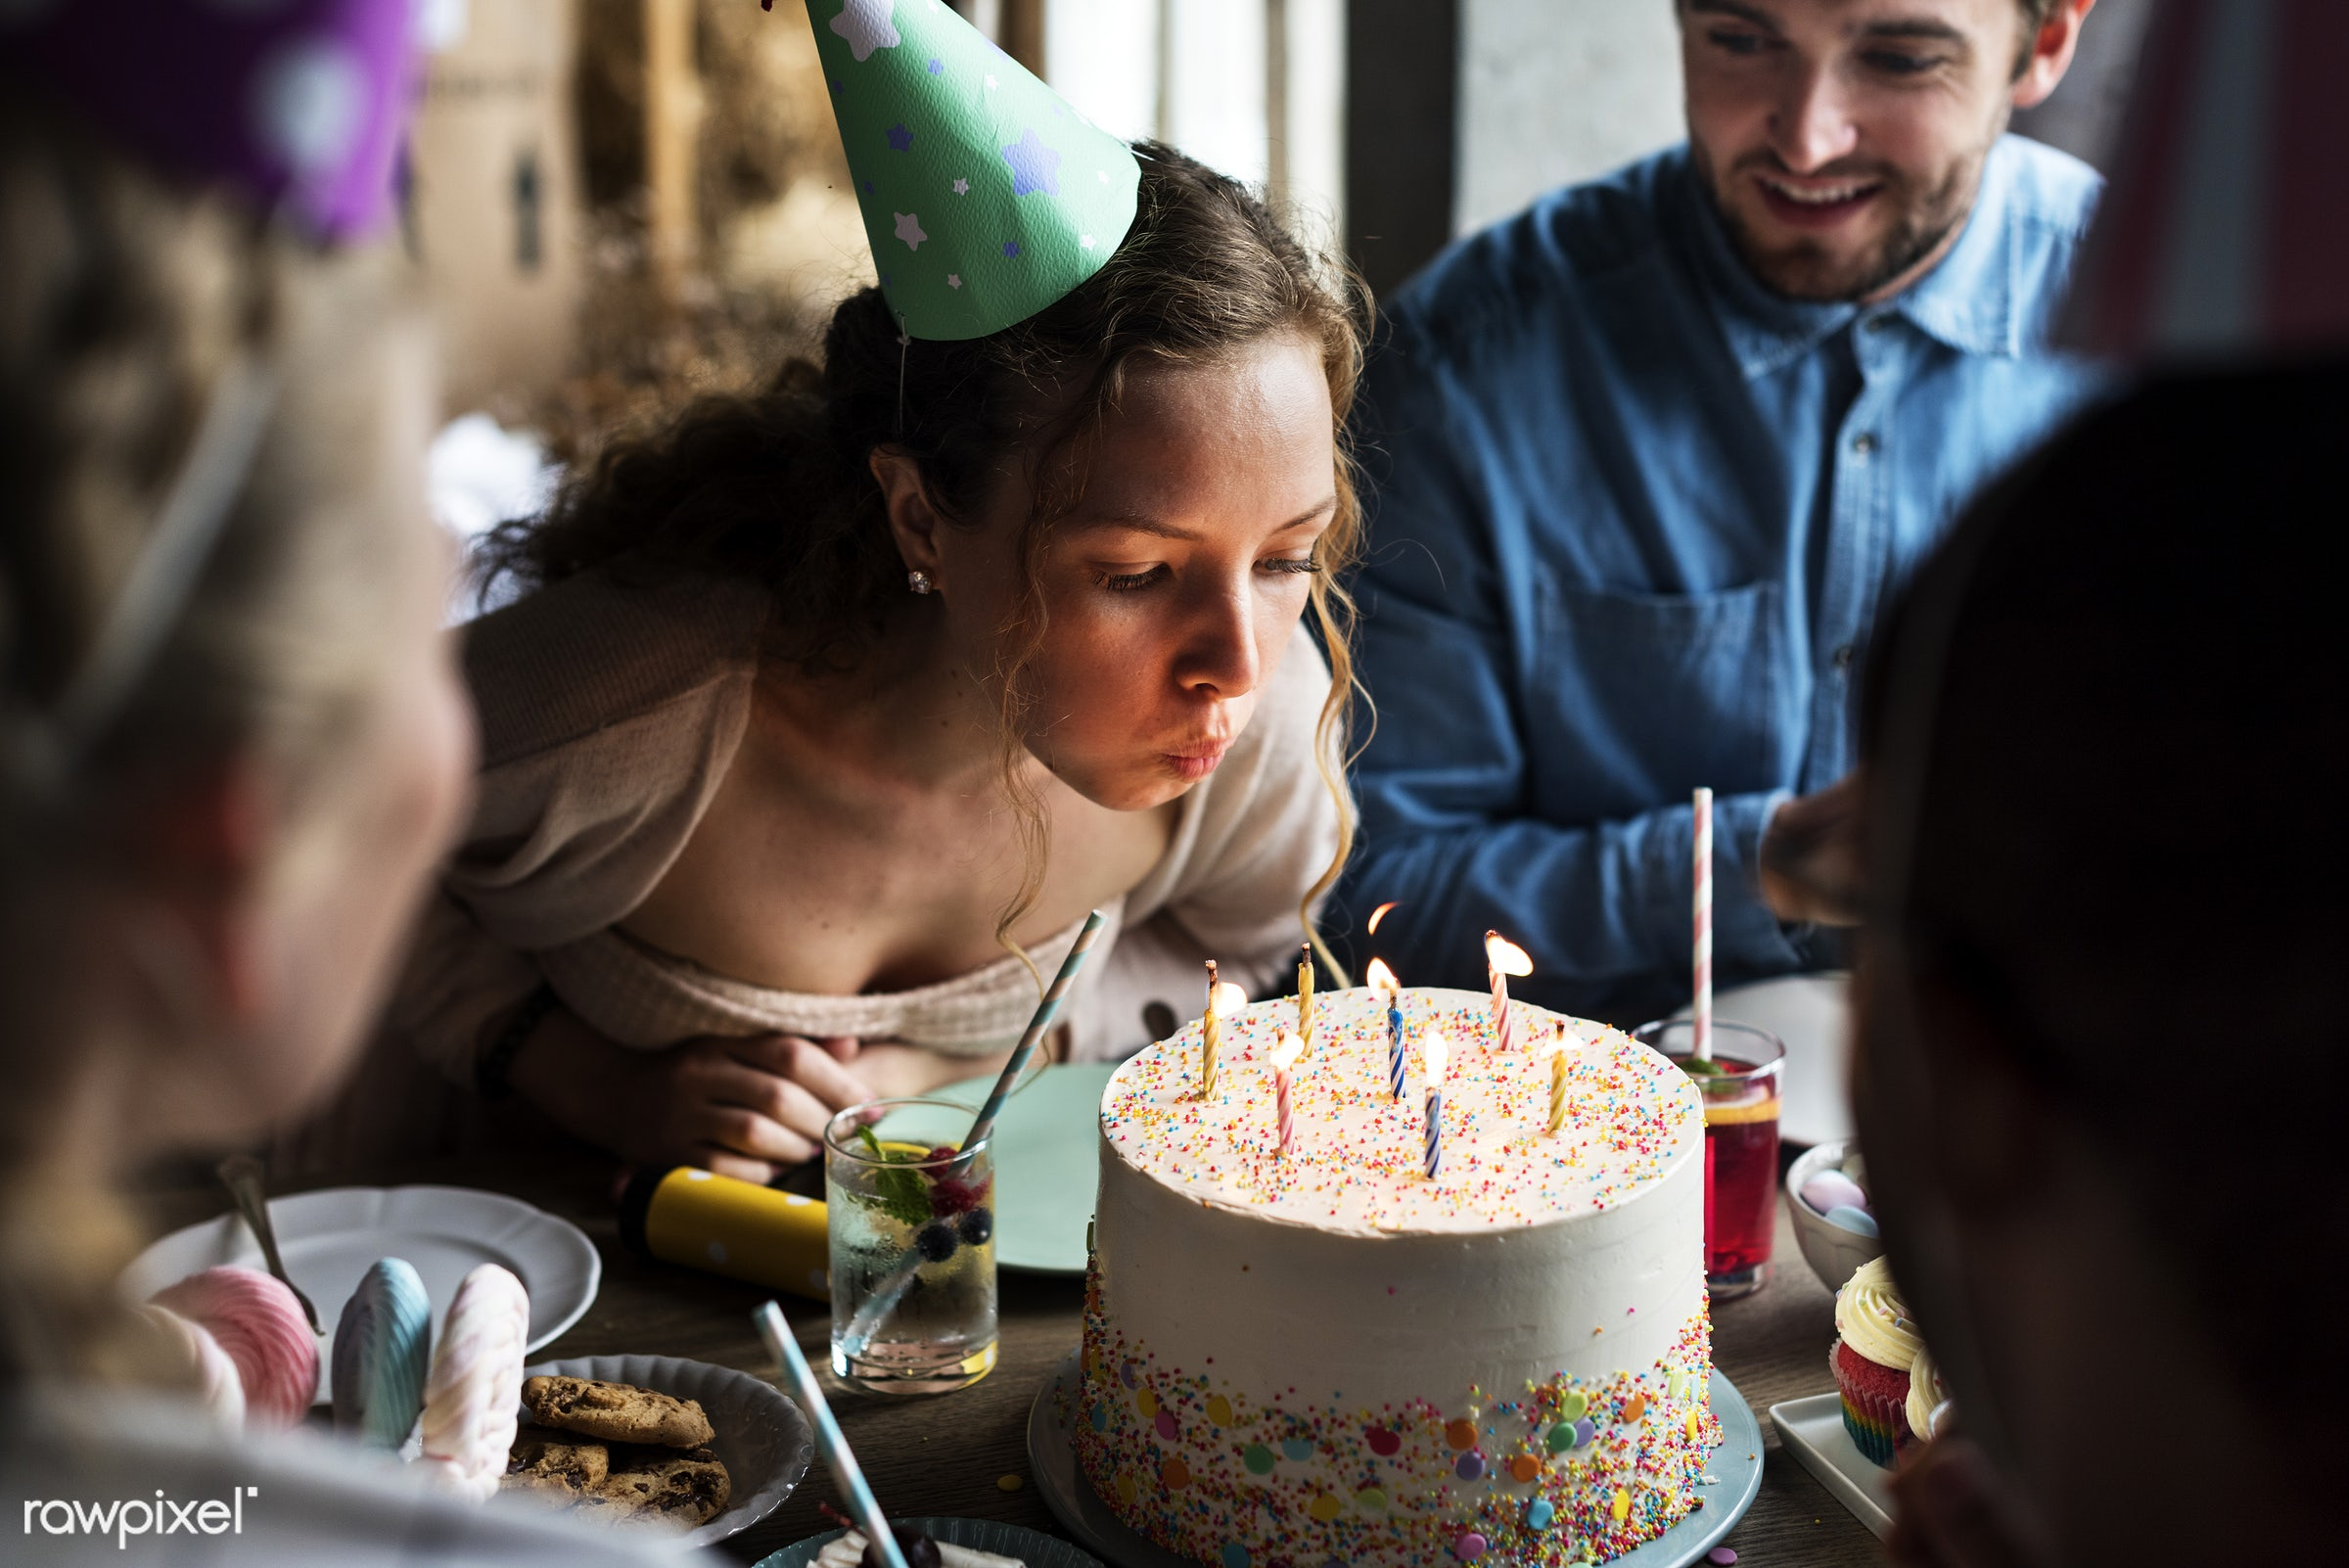 birthday, gift, person, relax, diverse, occasion, party, people, friends, bakery, happy, woman, gather, hangout, friendship...